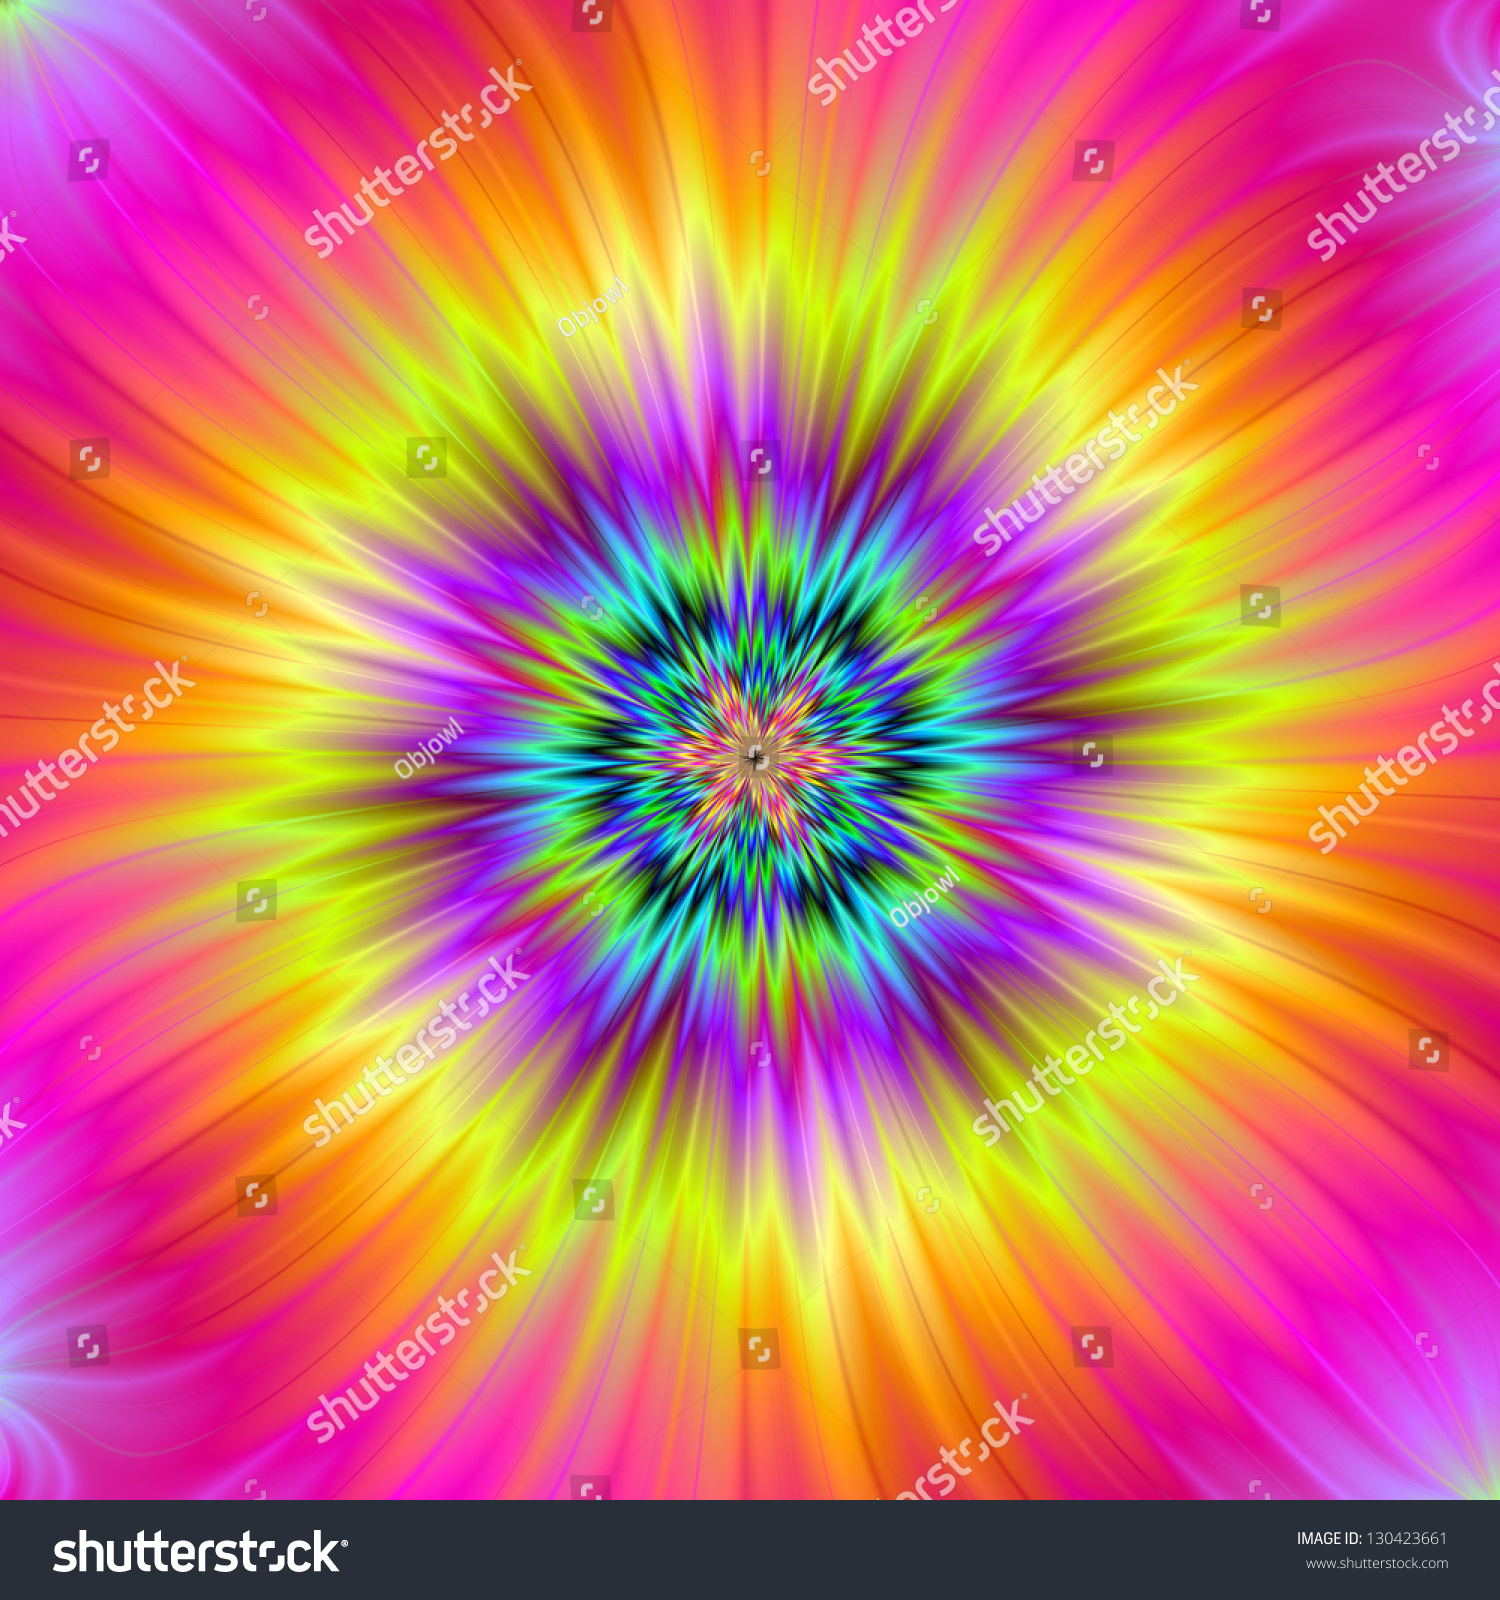 Fractal Black Flower Free Stock Photo: Sun Flower / Digital Fractal Abstract Image With A